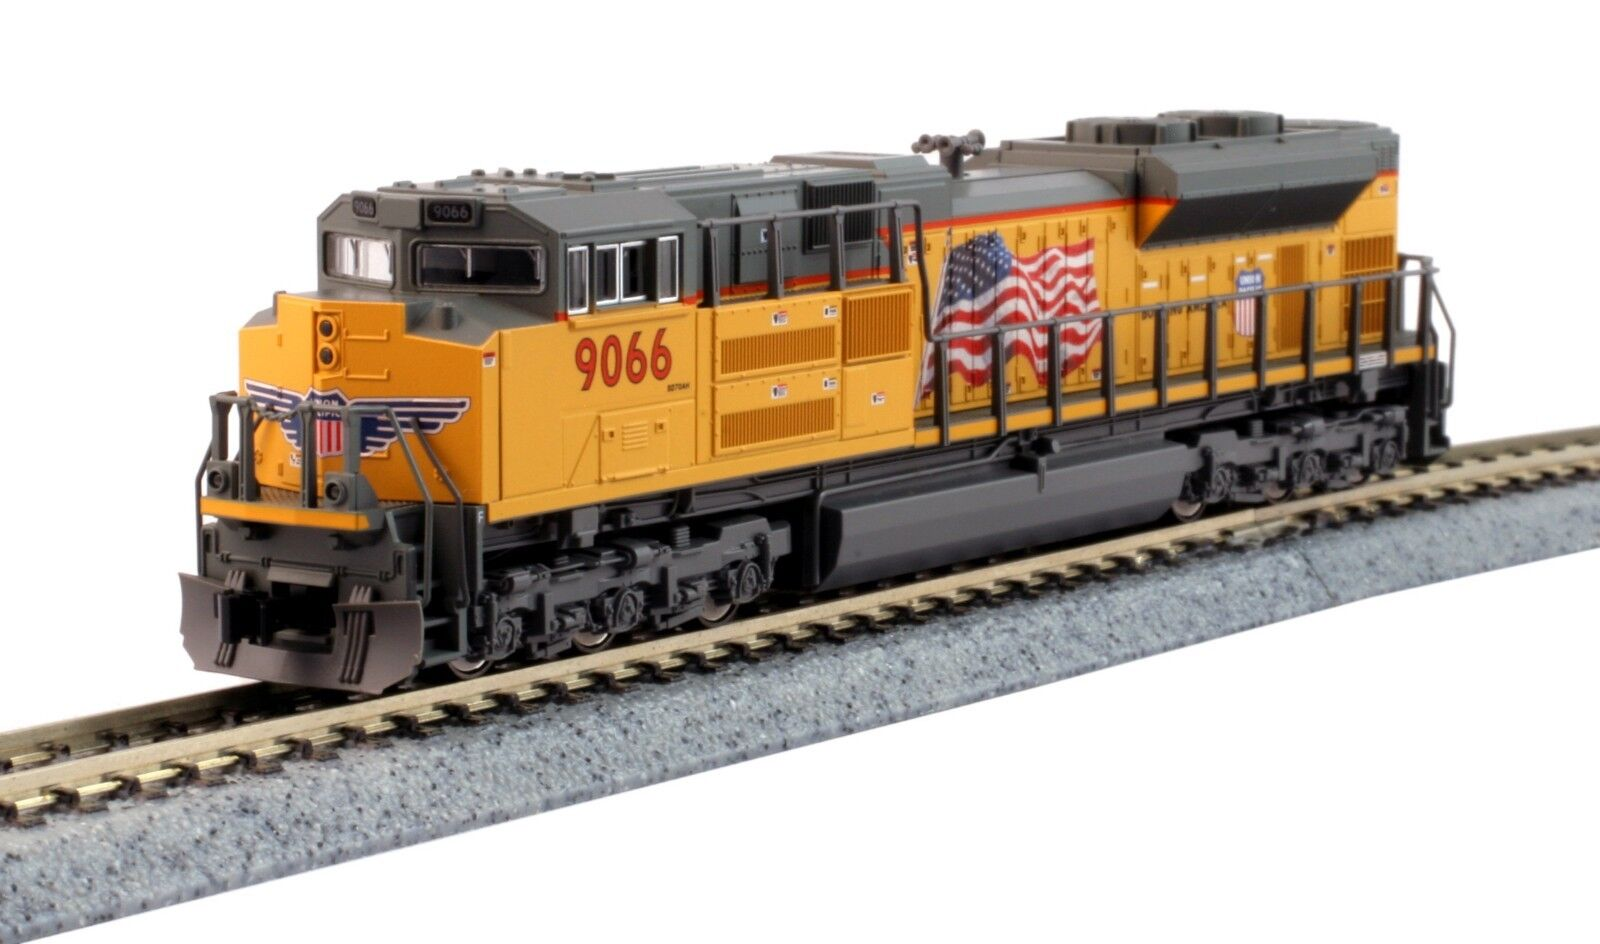 Kato N 176-8521 N *UNION PACIFIC* SD70ACe nose headlight DC or DCC tcs    9066